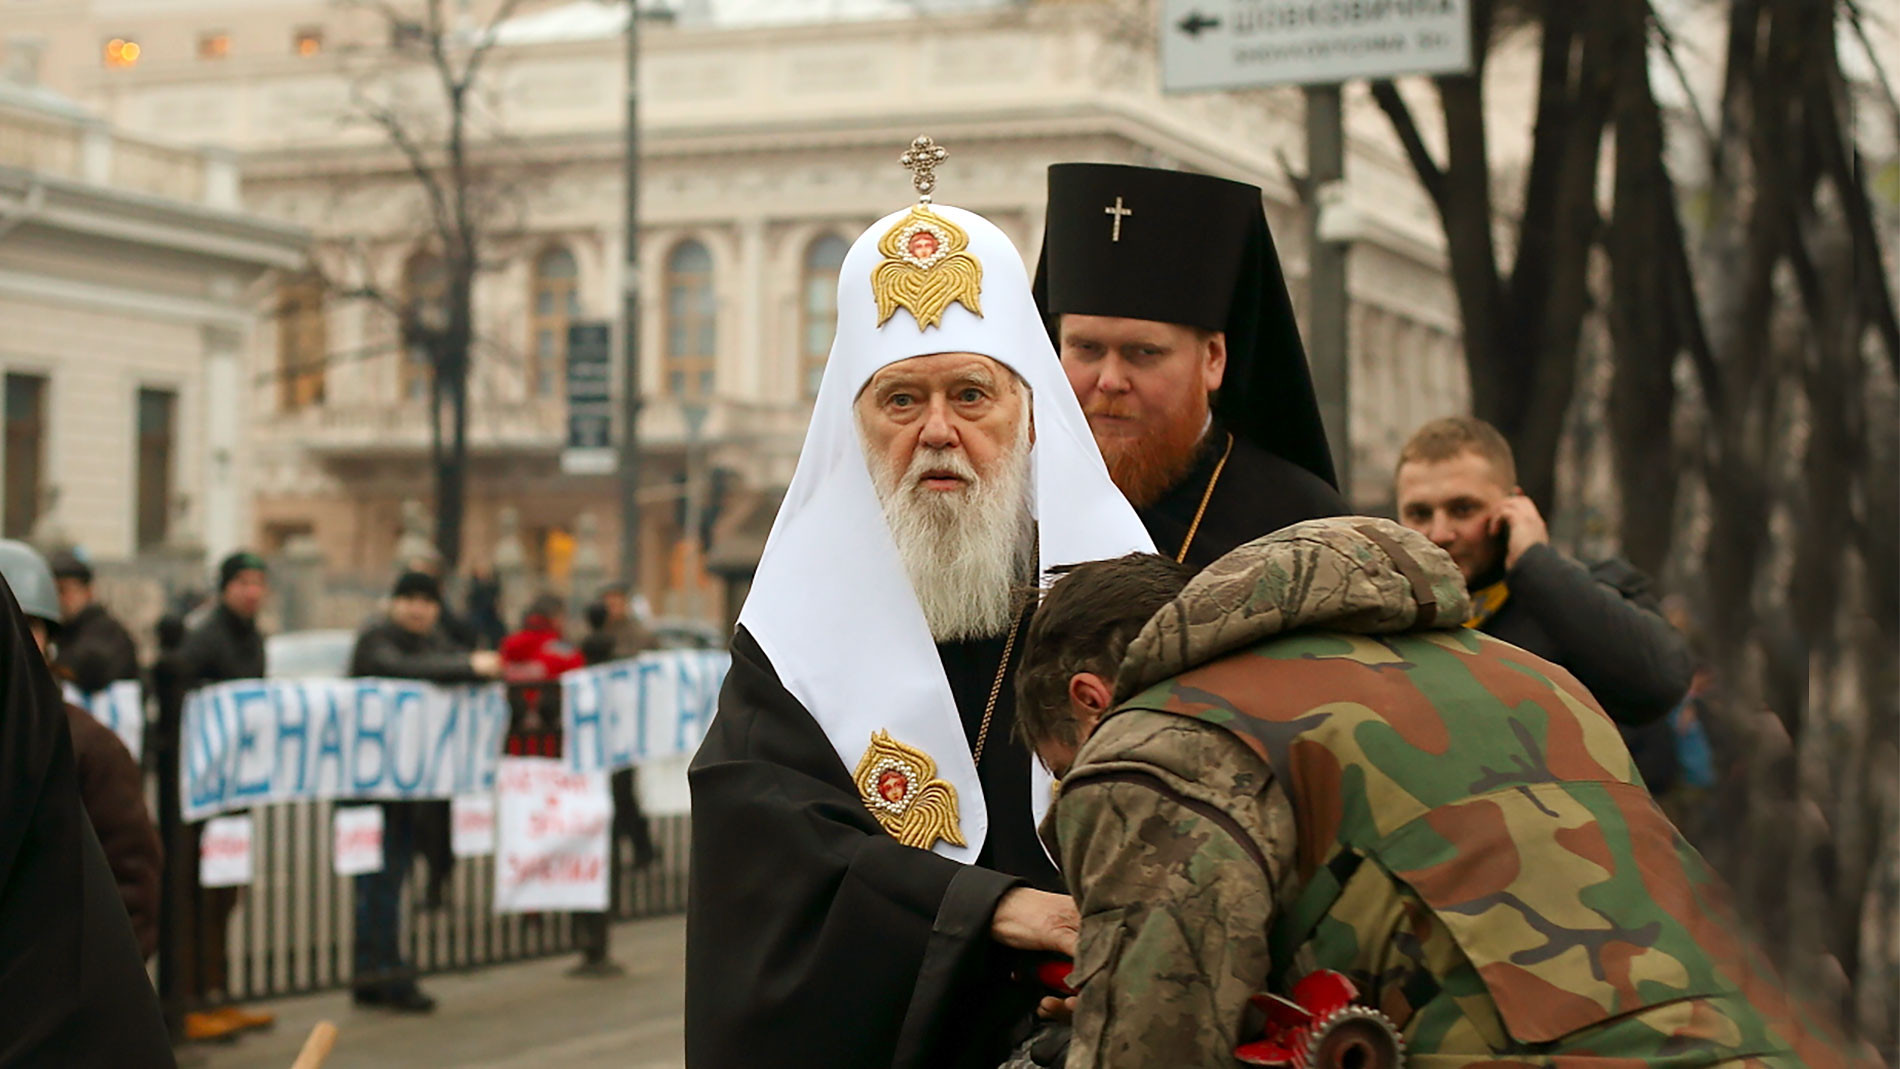 """<p>Фото: &copy; <a href=""""https://commons.wikimedia.org/wiki/File:Euromaidan_activist_kisses_the_hand_of_Filaret,_the_Patriarch_of_Kyiv.JPG"""" target=""""_blank"""">Wikimedia/Bektour</a></p>"""